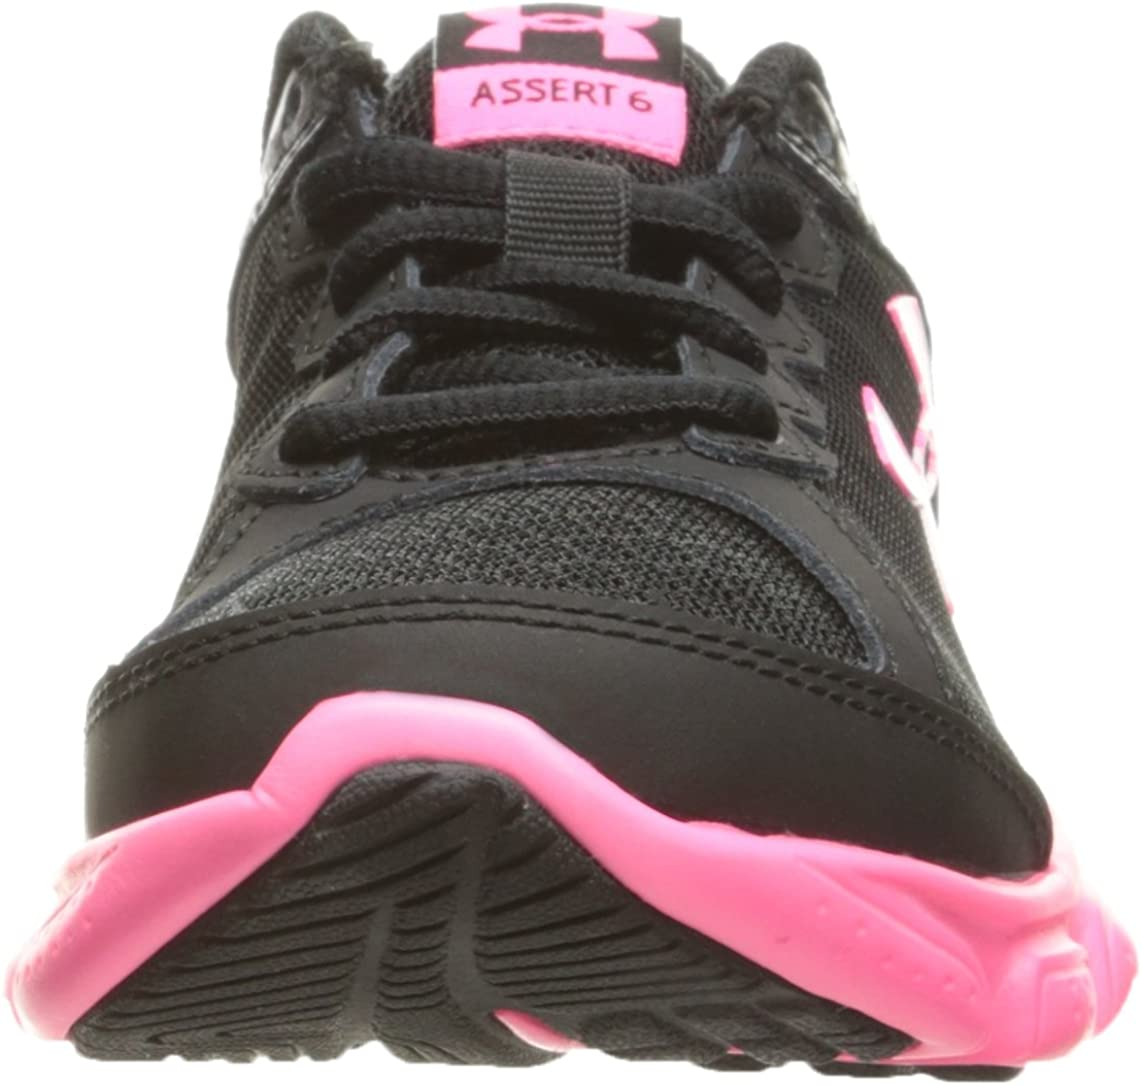 Under Armour Girls Pre School Assert 6 Sneaker